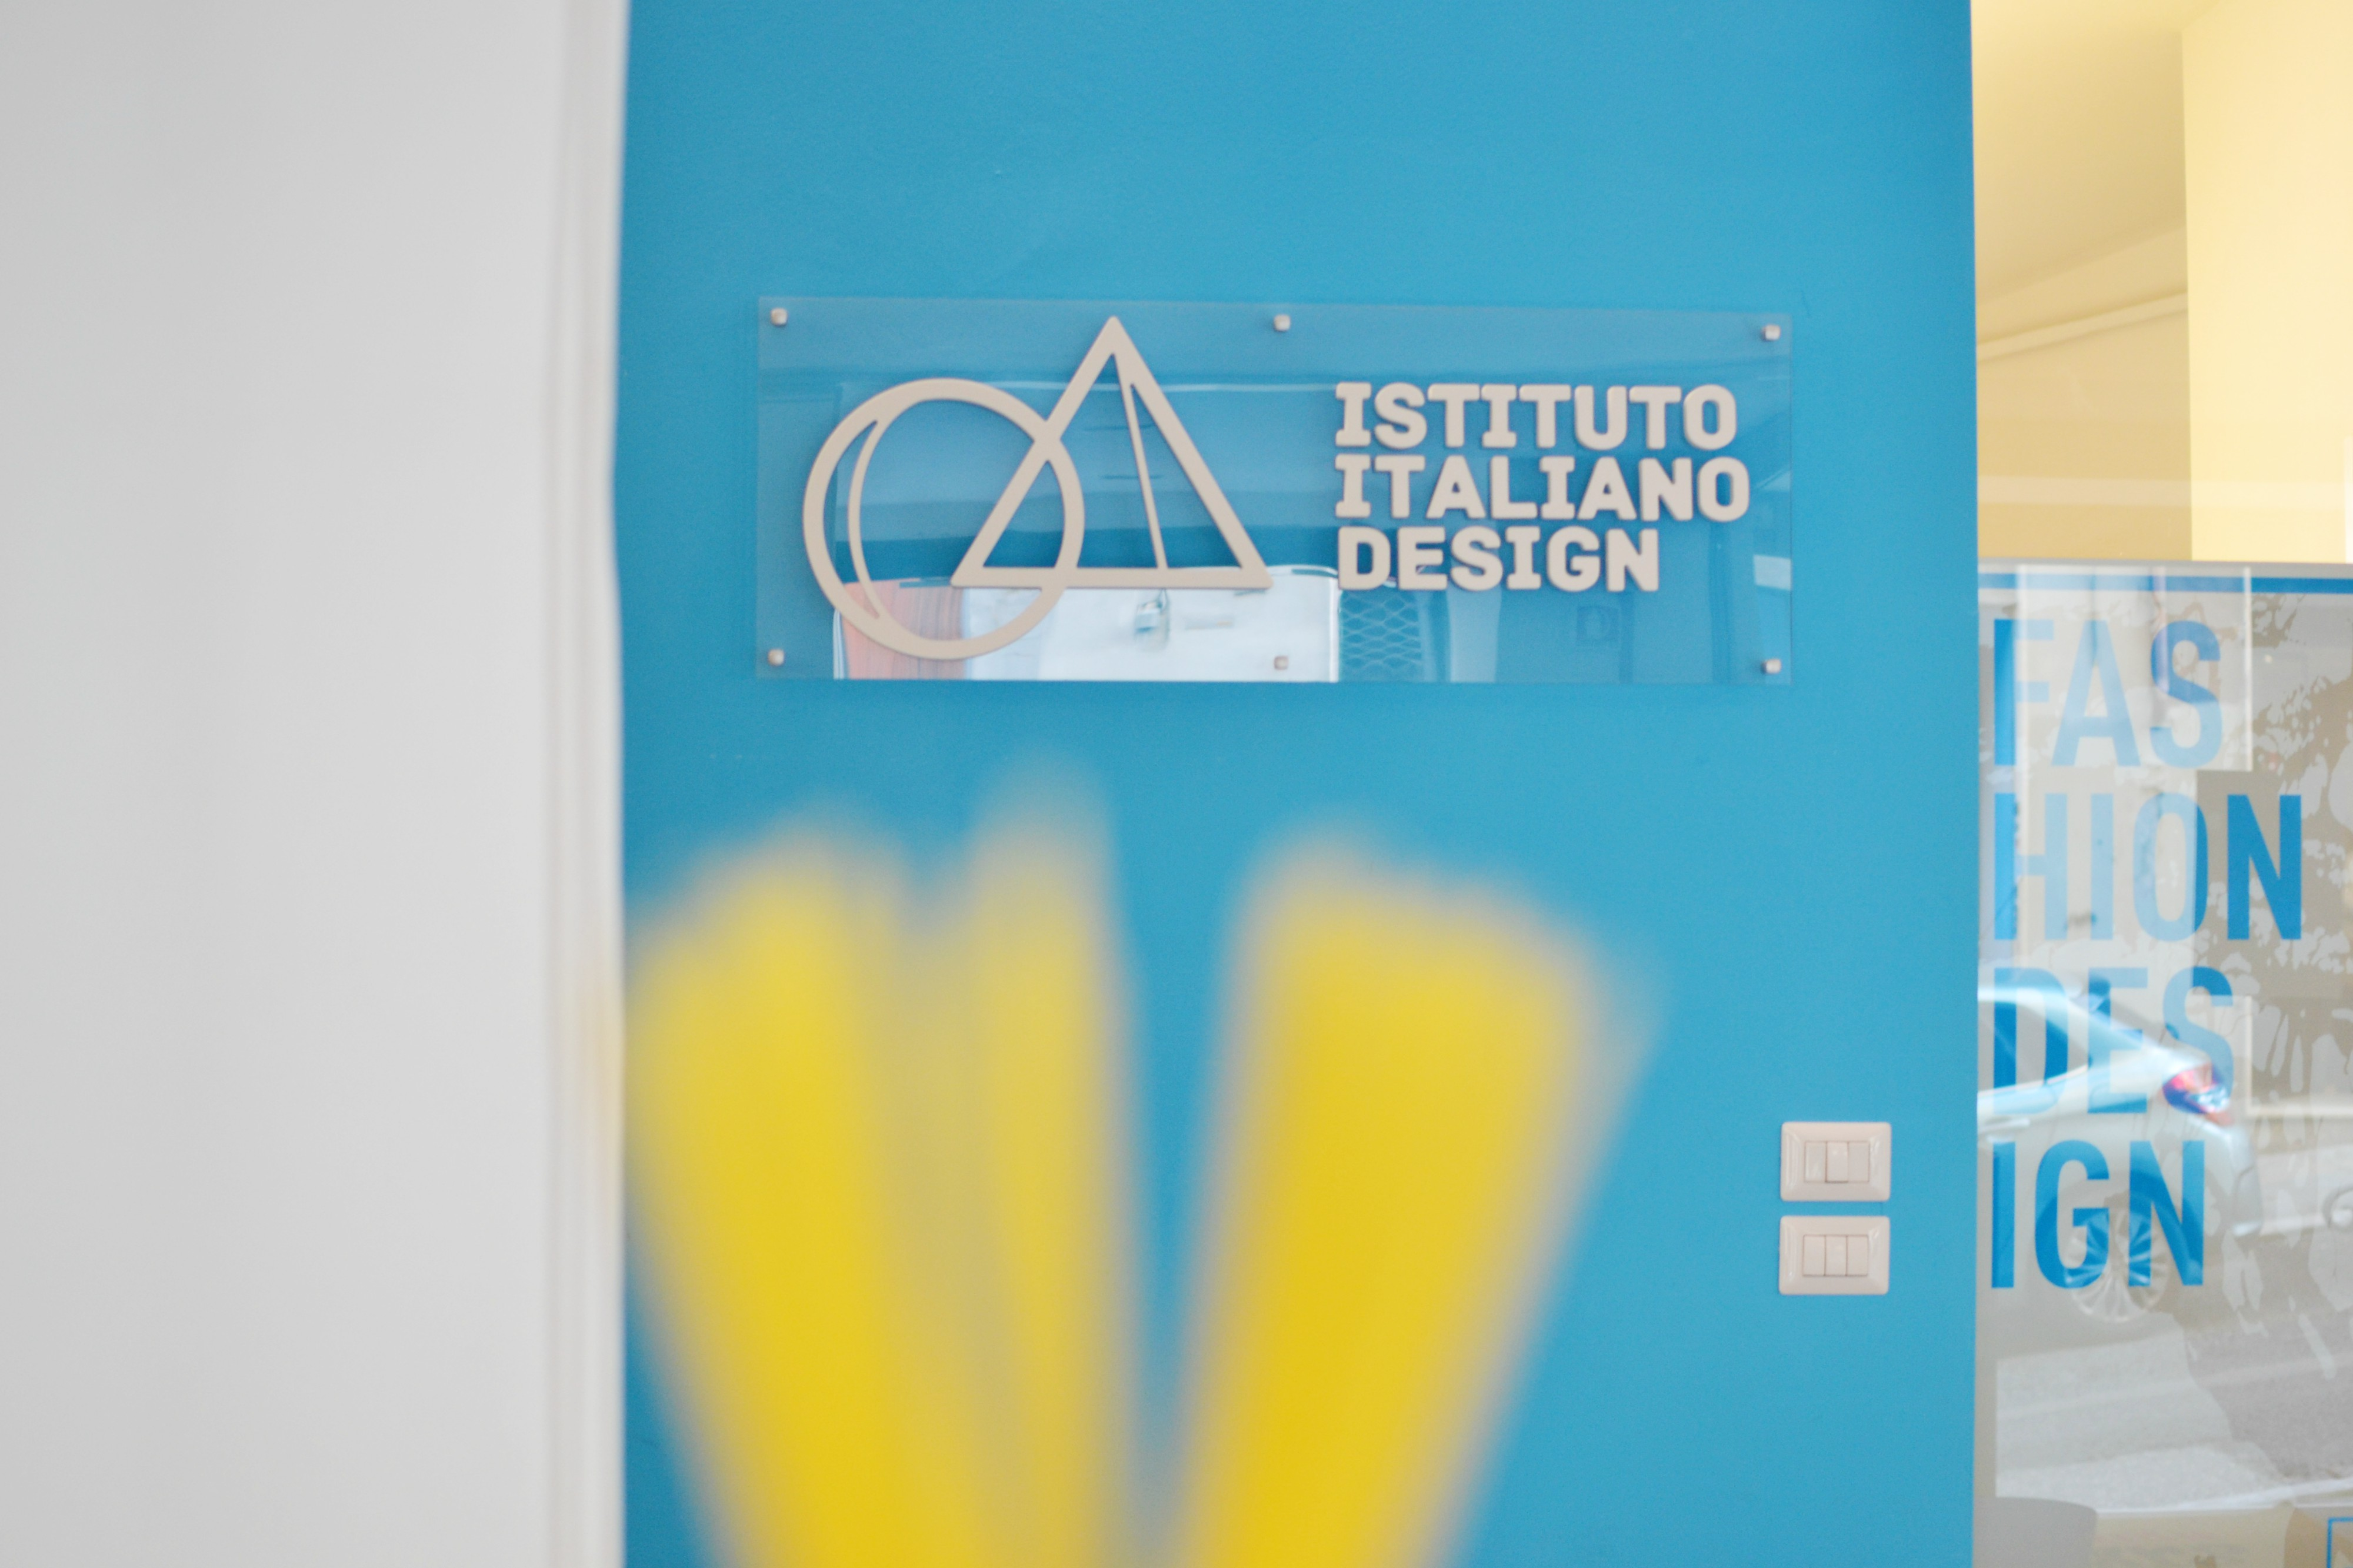 IID-nell'istituto